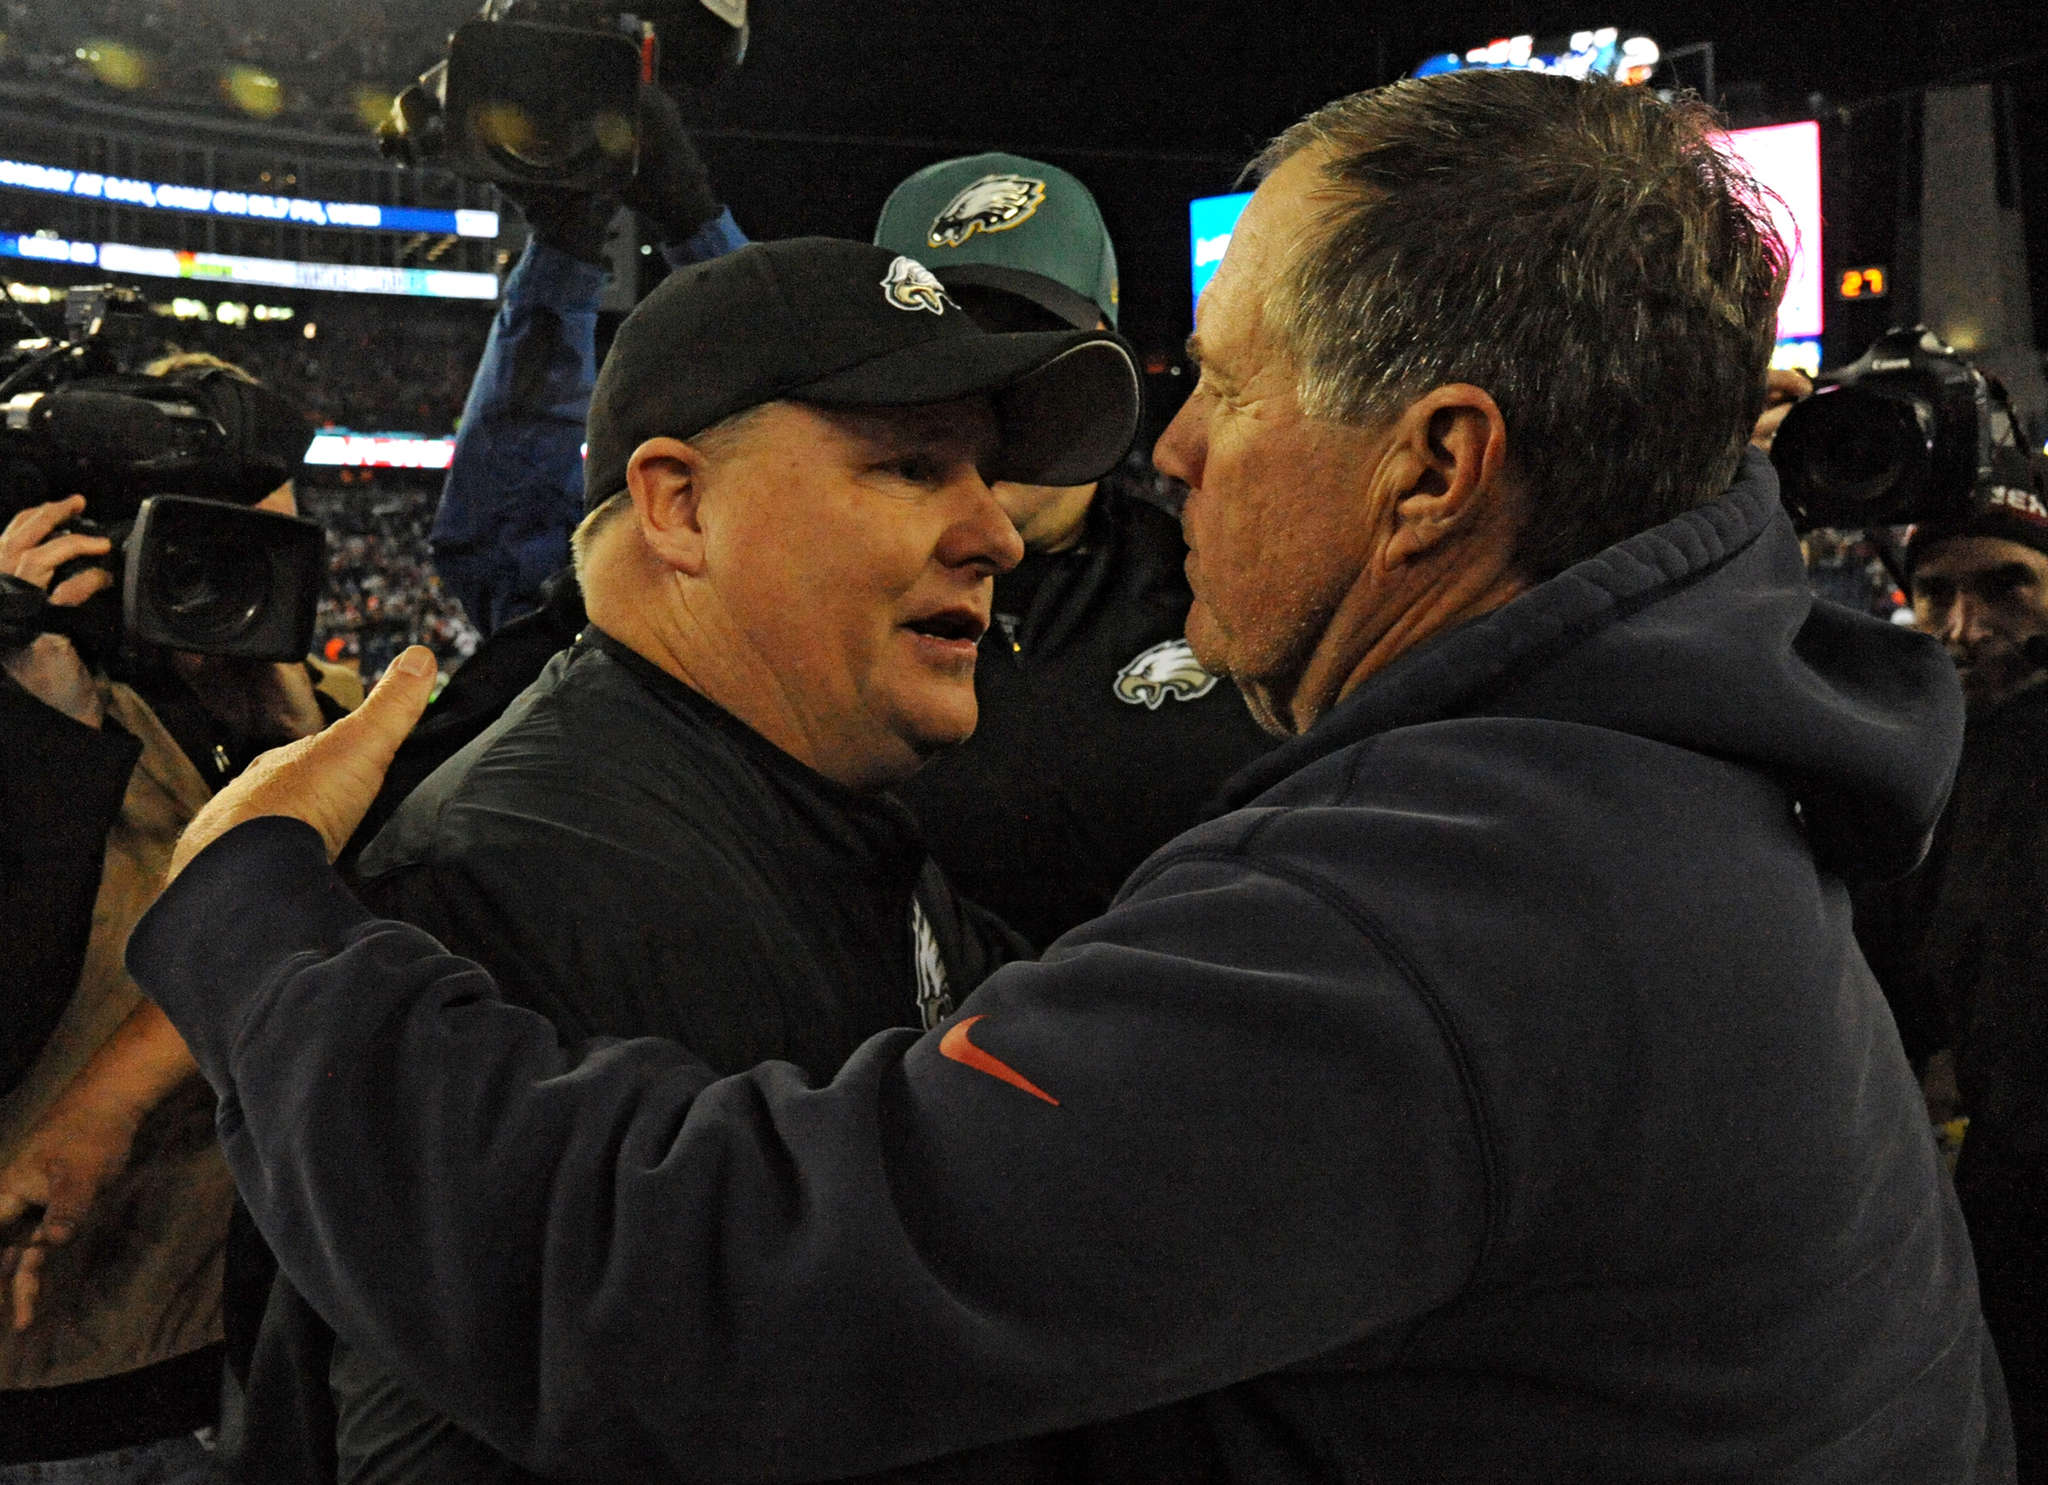 Patriots coach Bill Belichick (right) greets his Eagles counterpart, Chip Kelly, after the game, which was not the finest hour for New England´s four-time Super Bowl winner.